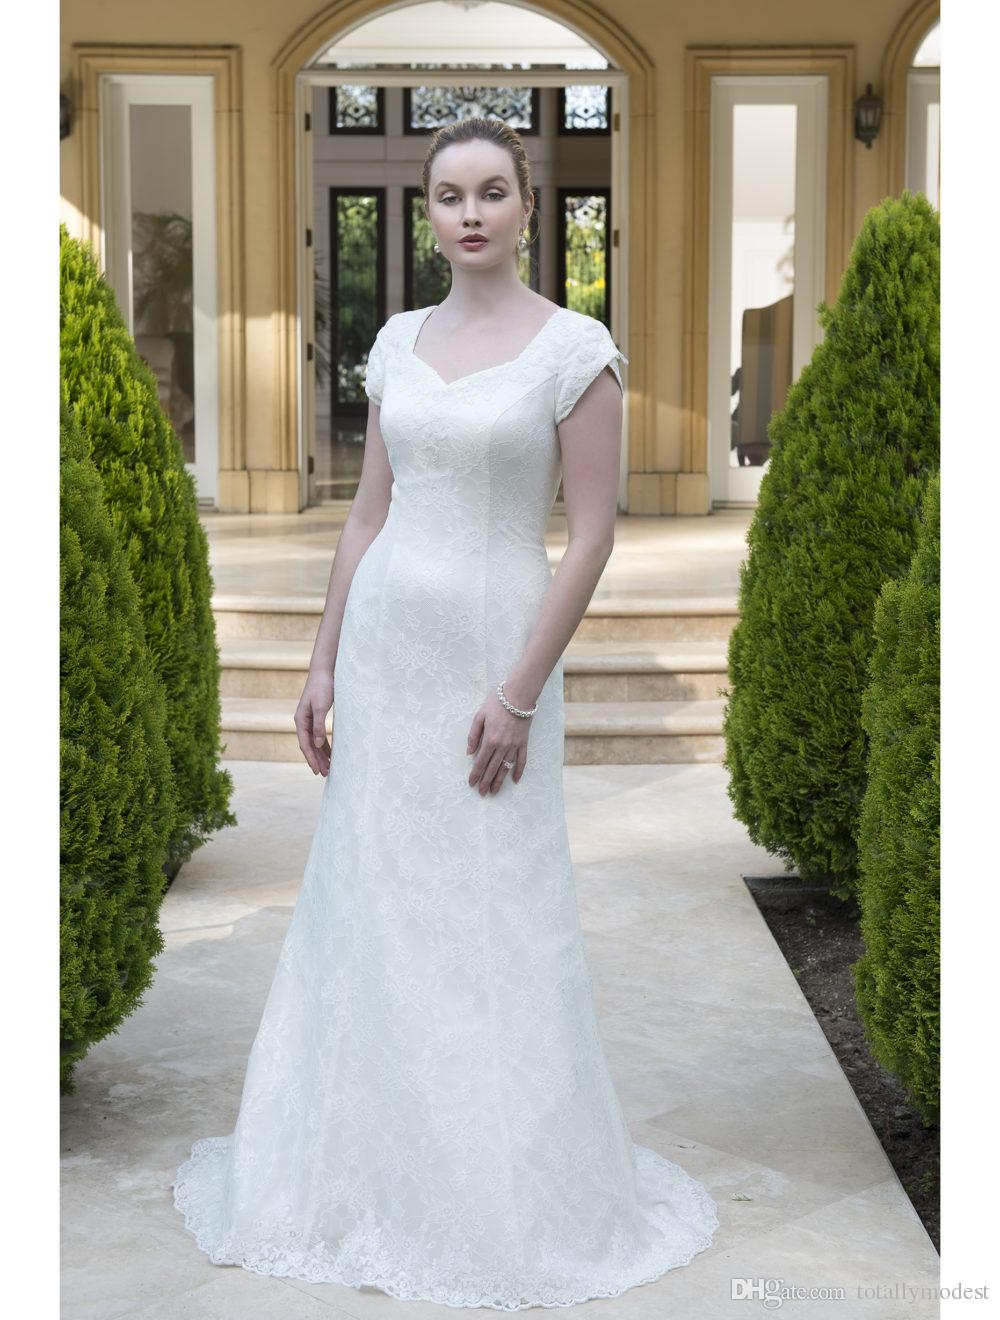 New Simple Lace Modest Wedding Dresses With Tulip Cap Sleeves Queen Anne Sweetheart Neckline Buttons Over Zipper Back Lds Bridal Gown Dresses Coloured